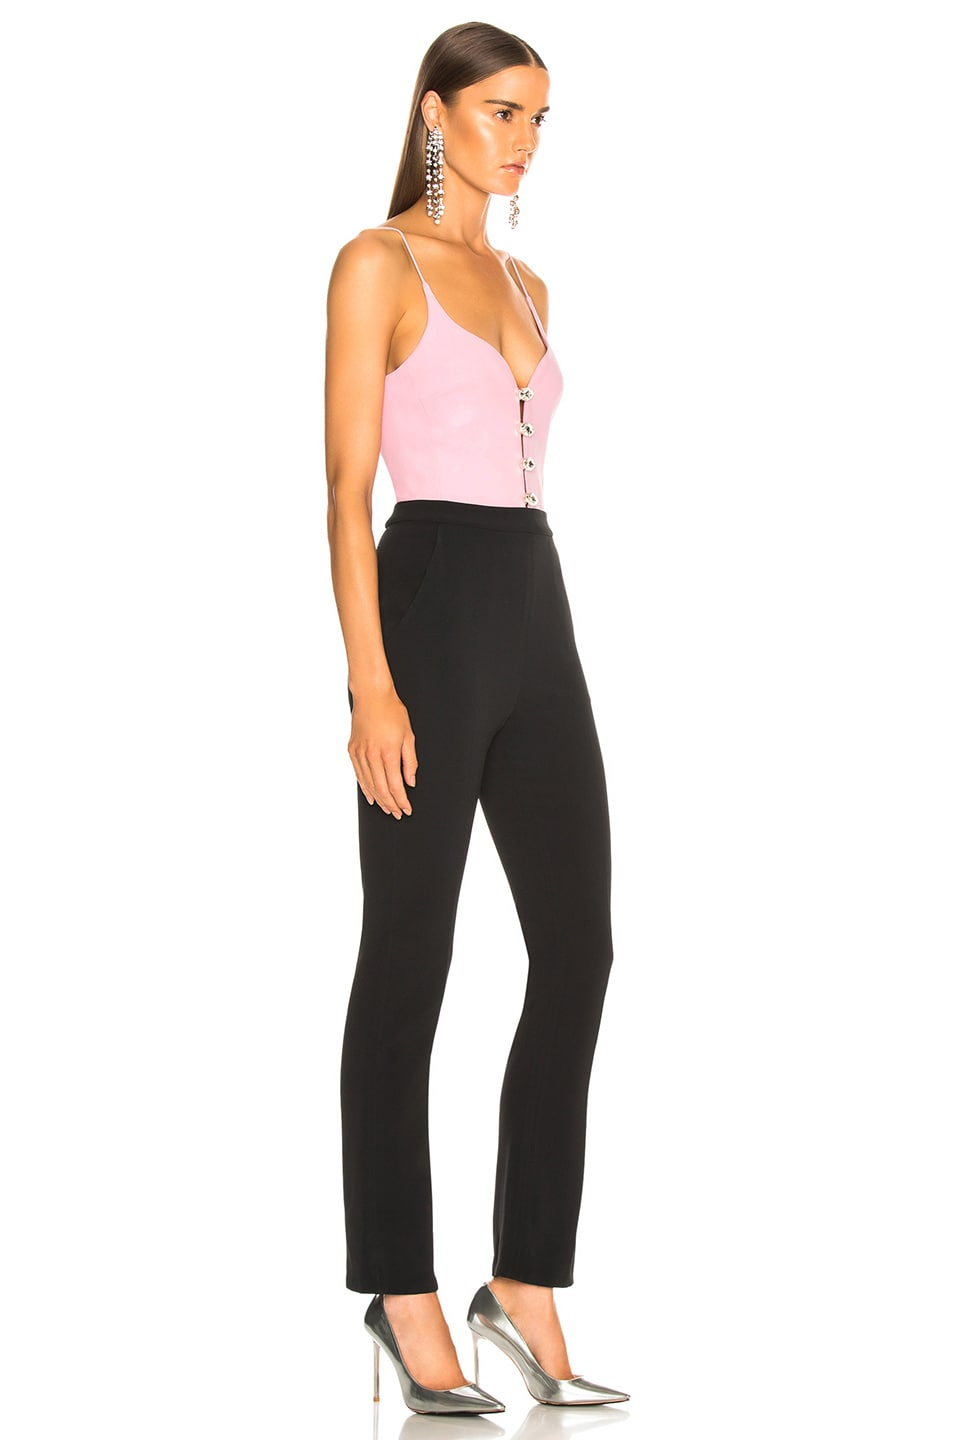 Image 2 of David Koma Sweetheart Neck Jumpsuit in Pink, Silver & Black